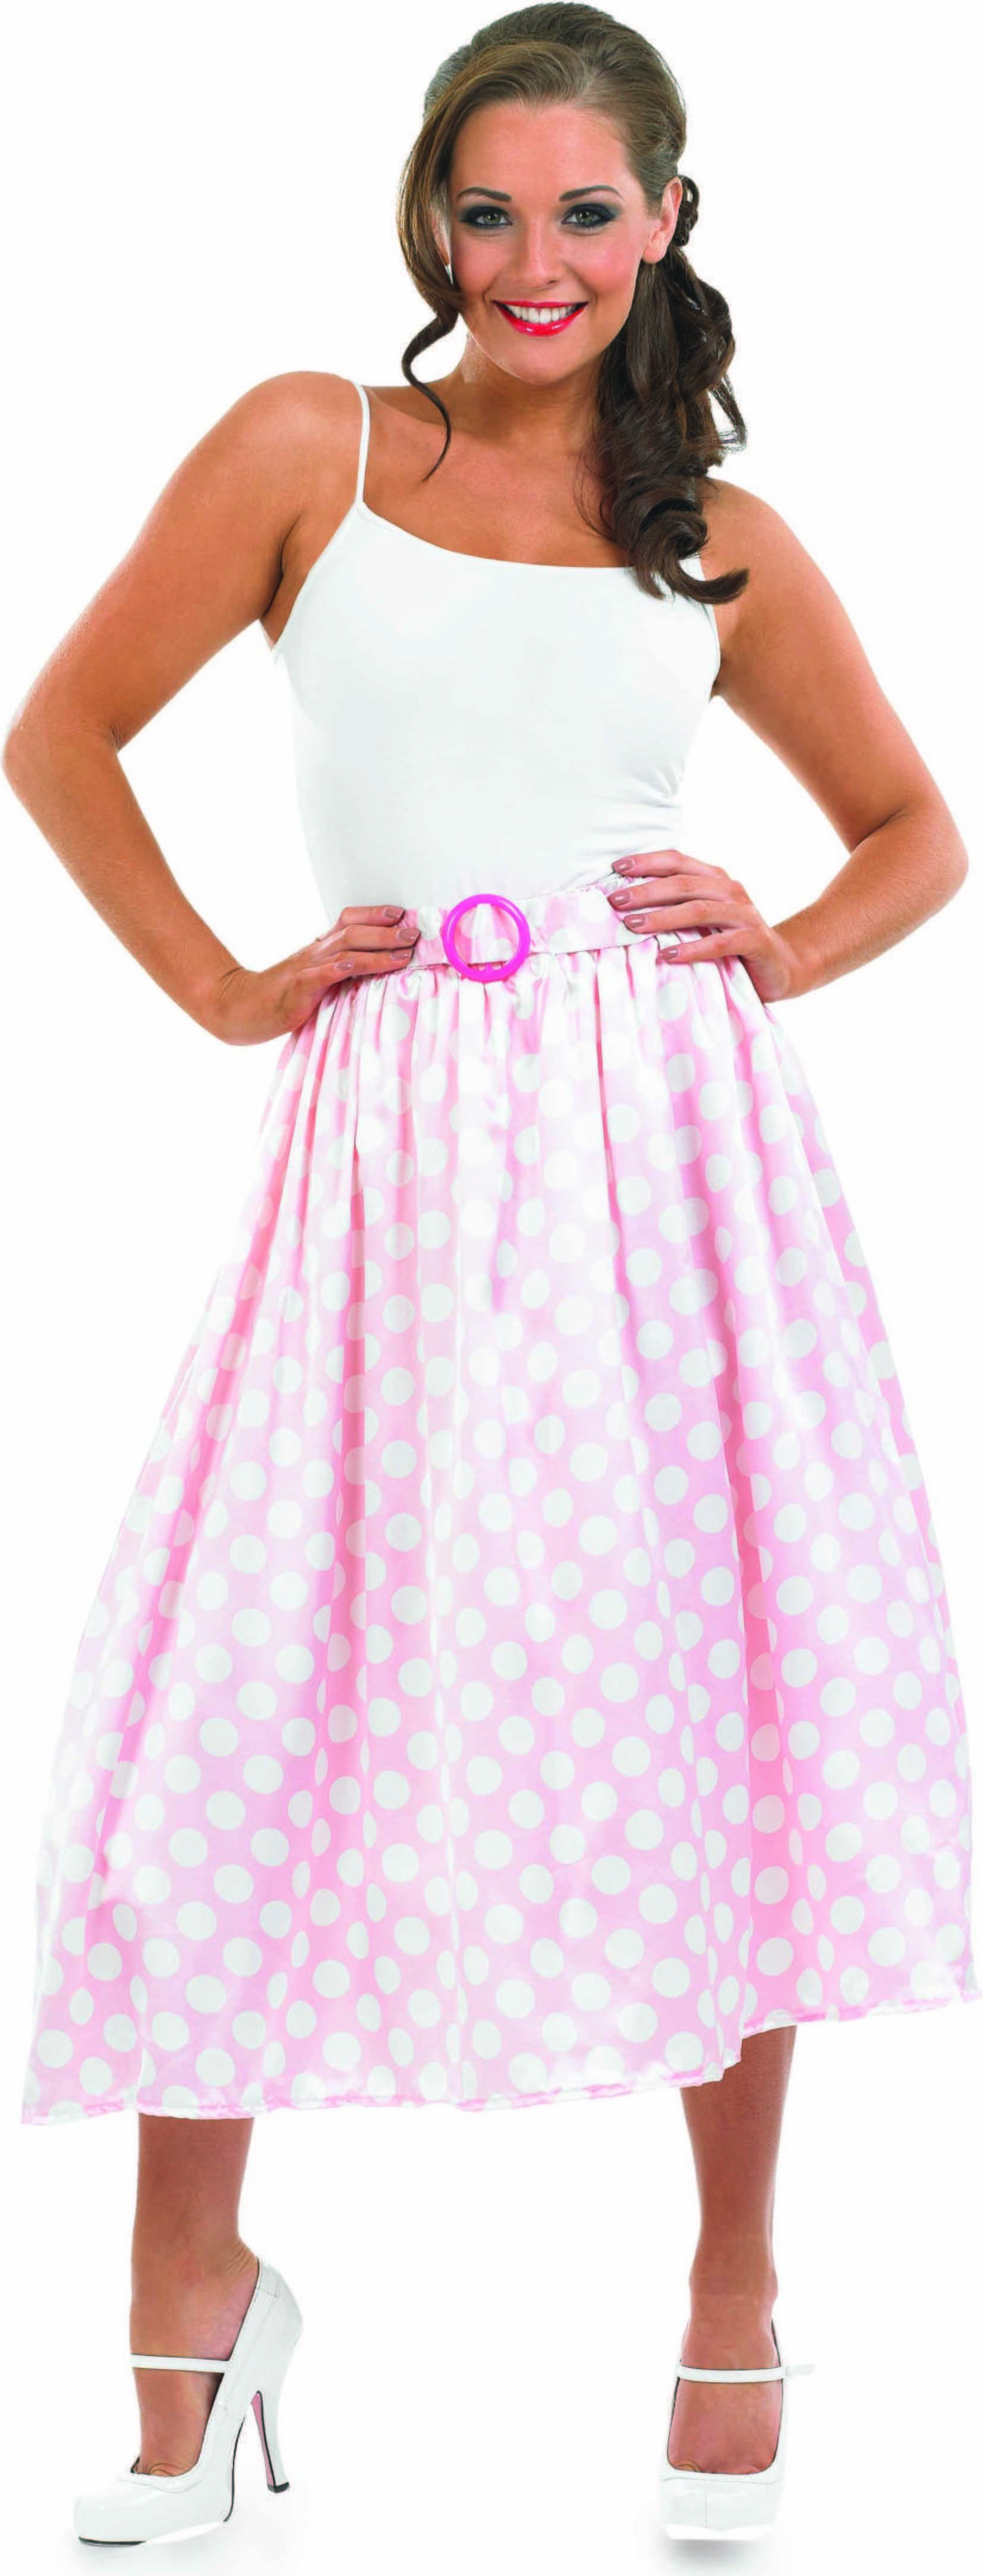 Ladies 1950S Pink Rock N Roll Skirt Outfit - (Pink)